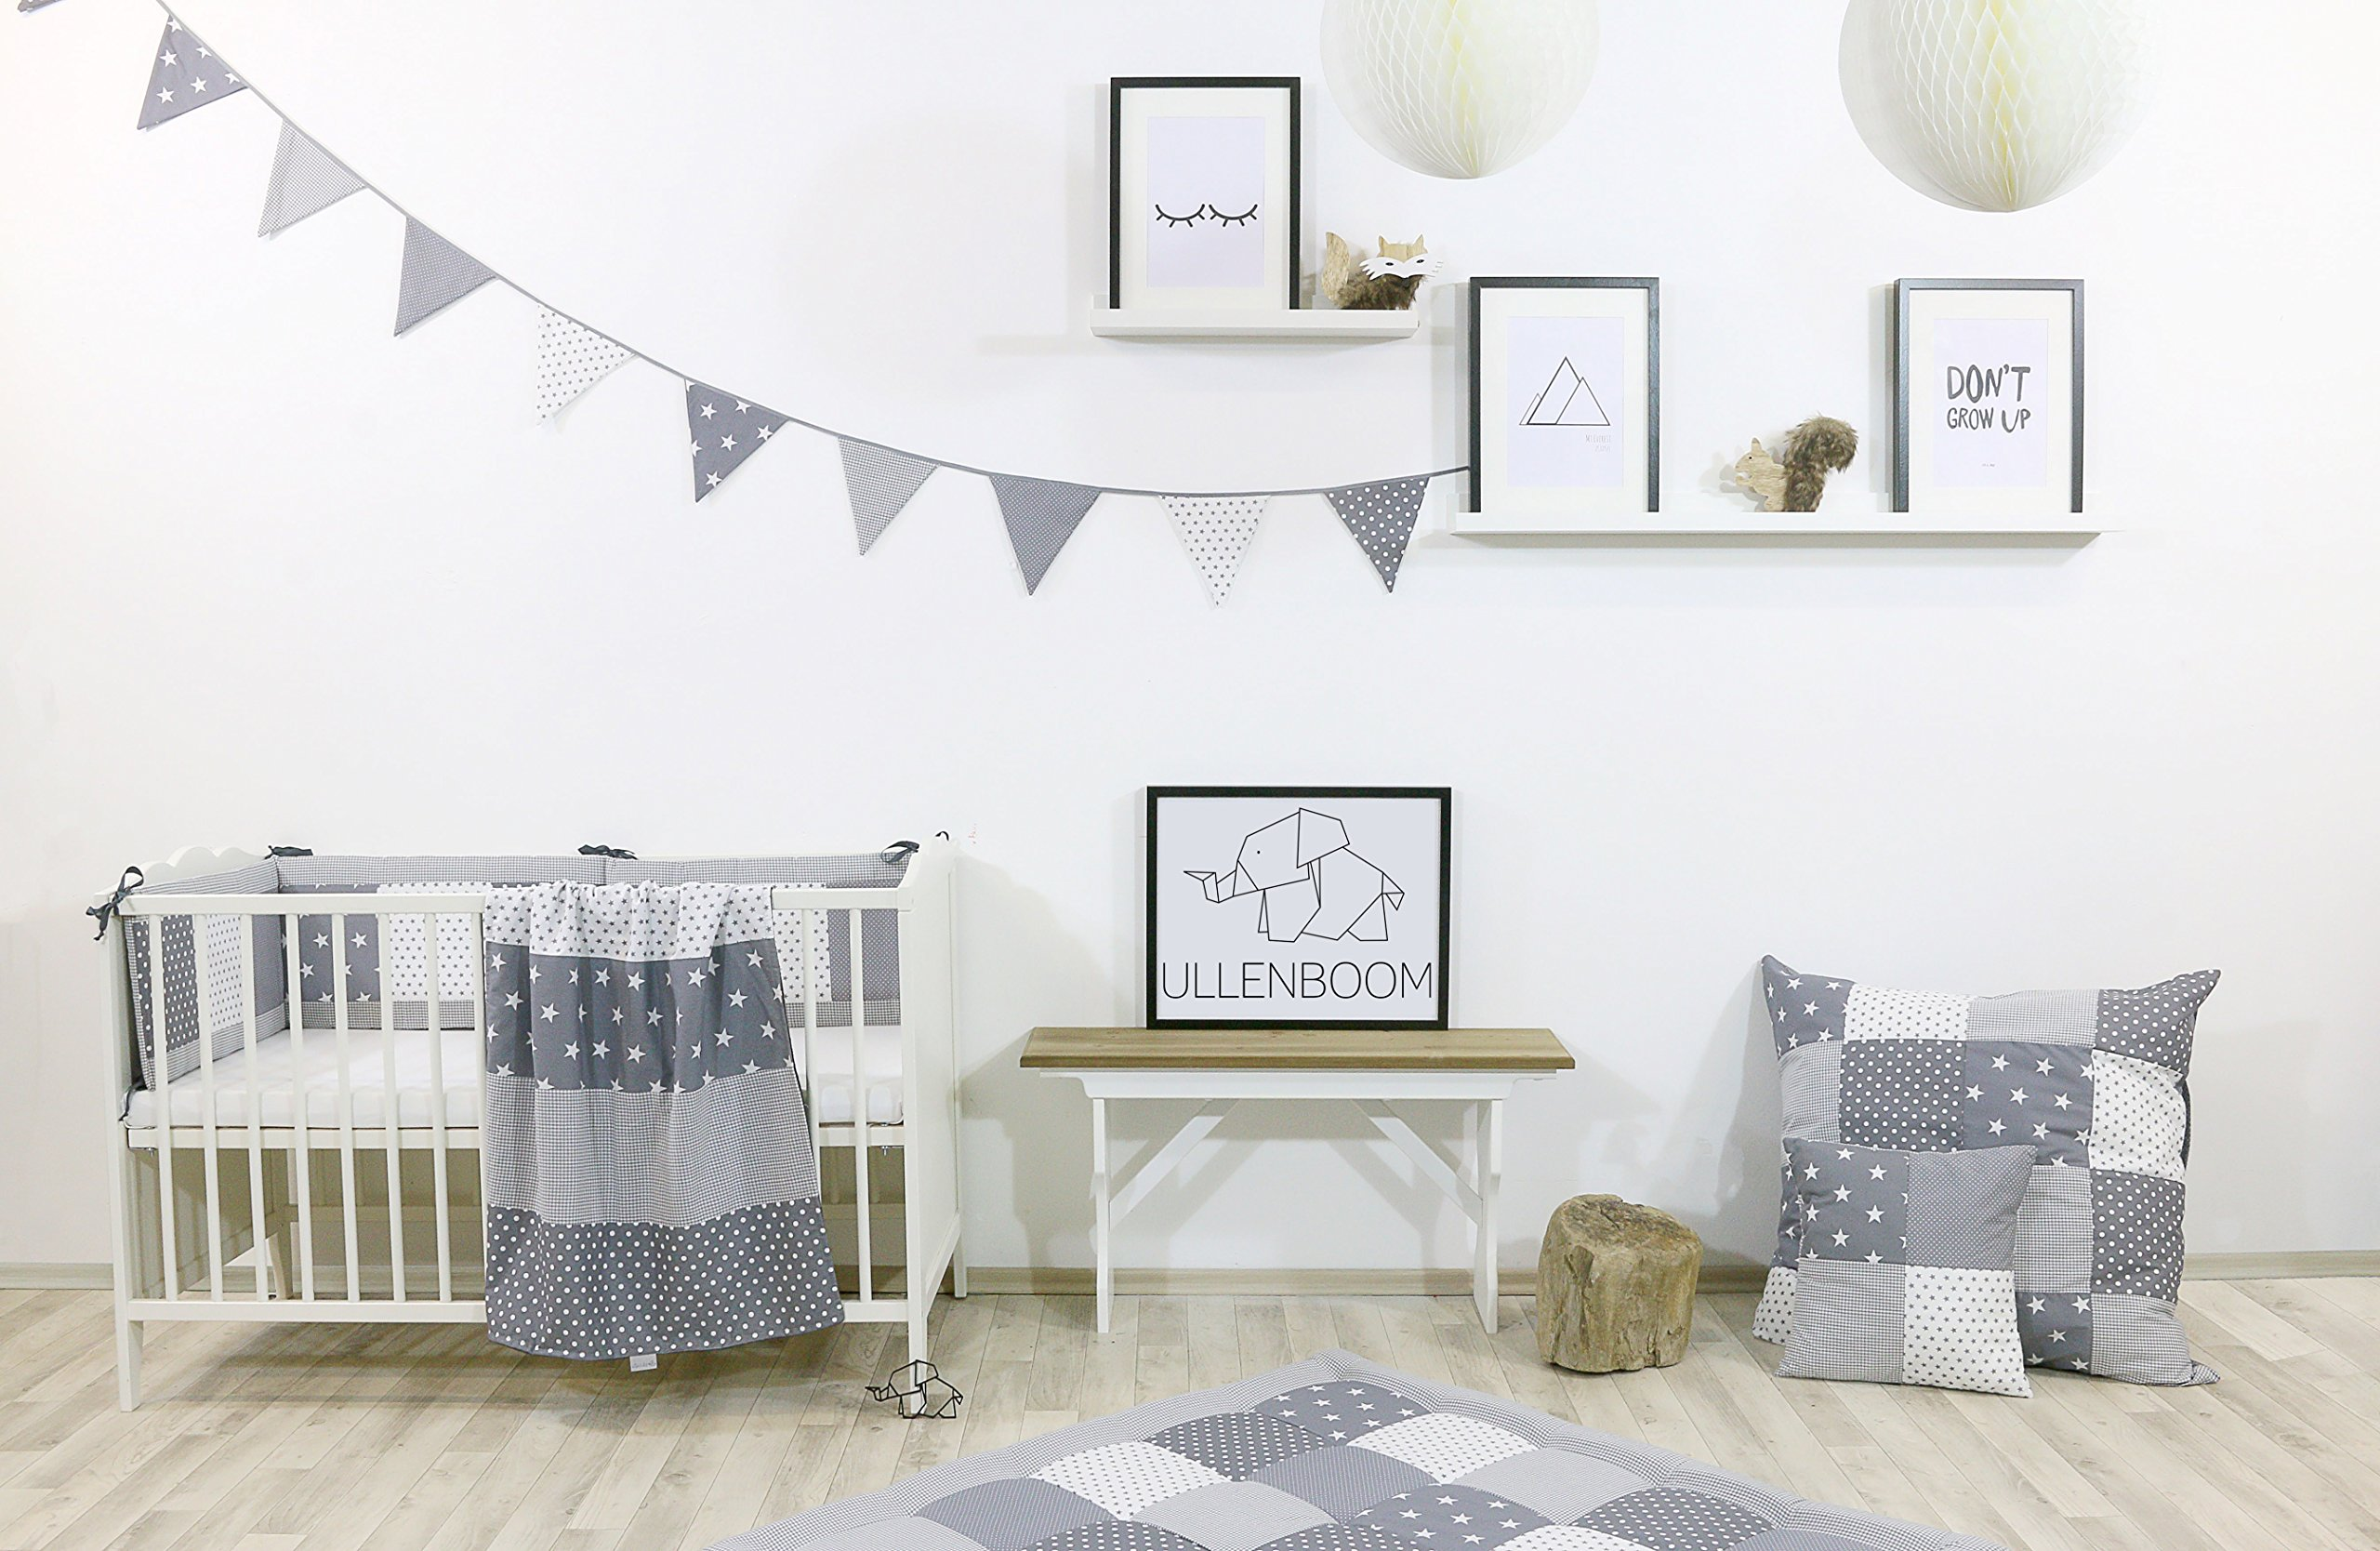 ULLENBOOM ® Bumper - Grey Stars (400 x 30 cm Baby playpen Bumper, Full Surround Bumper Pads for 100 x 100 cm playpen) ULLENBOOM This 400 x 30 cm patchwork bumper serves as a protective insert and surround for 100 x 100 cm playpens, to provide babies with protection - especially head protection - from playpen bars The sizes 200 x 30 cm and 400 x 30 cm (full surround) are for playpens - the 'full surround' bumper comes in two sections. ULLENBOOM  also offers additional sizes for 140 x 70 cm and 120 x 60 cm cots These bumpers can be washed at 30 °C and the materials used are certified according to the Oeko-Tex standard (tested for harmful substances, hypoallergenic); smooth outer fabric: 100% cotton (Oeko-Tex); soft, thick wadding: 100% polyester (Oeko-Tex) 2